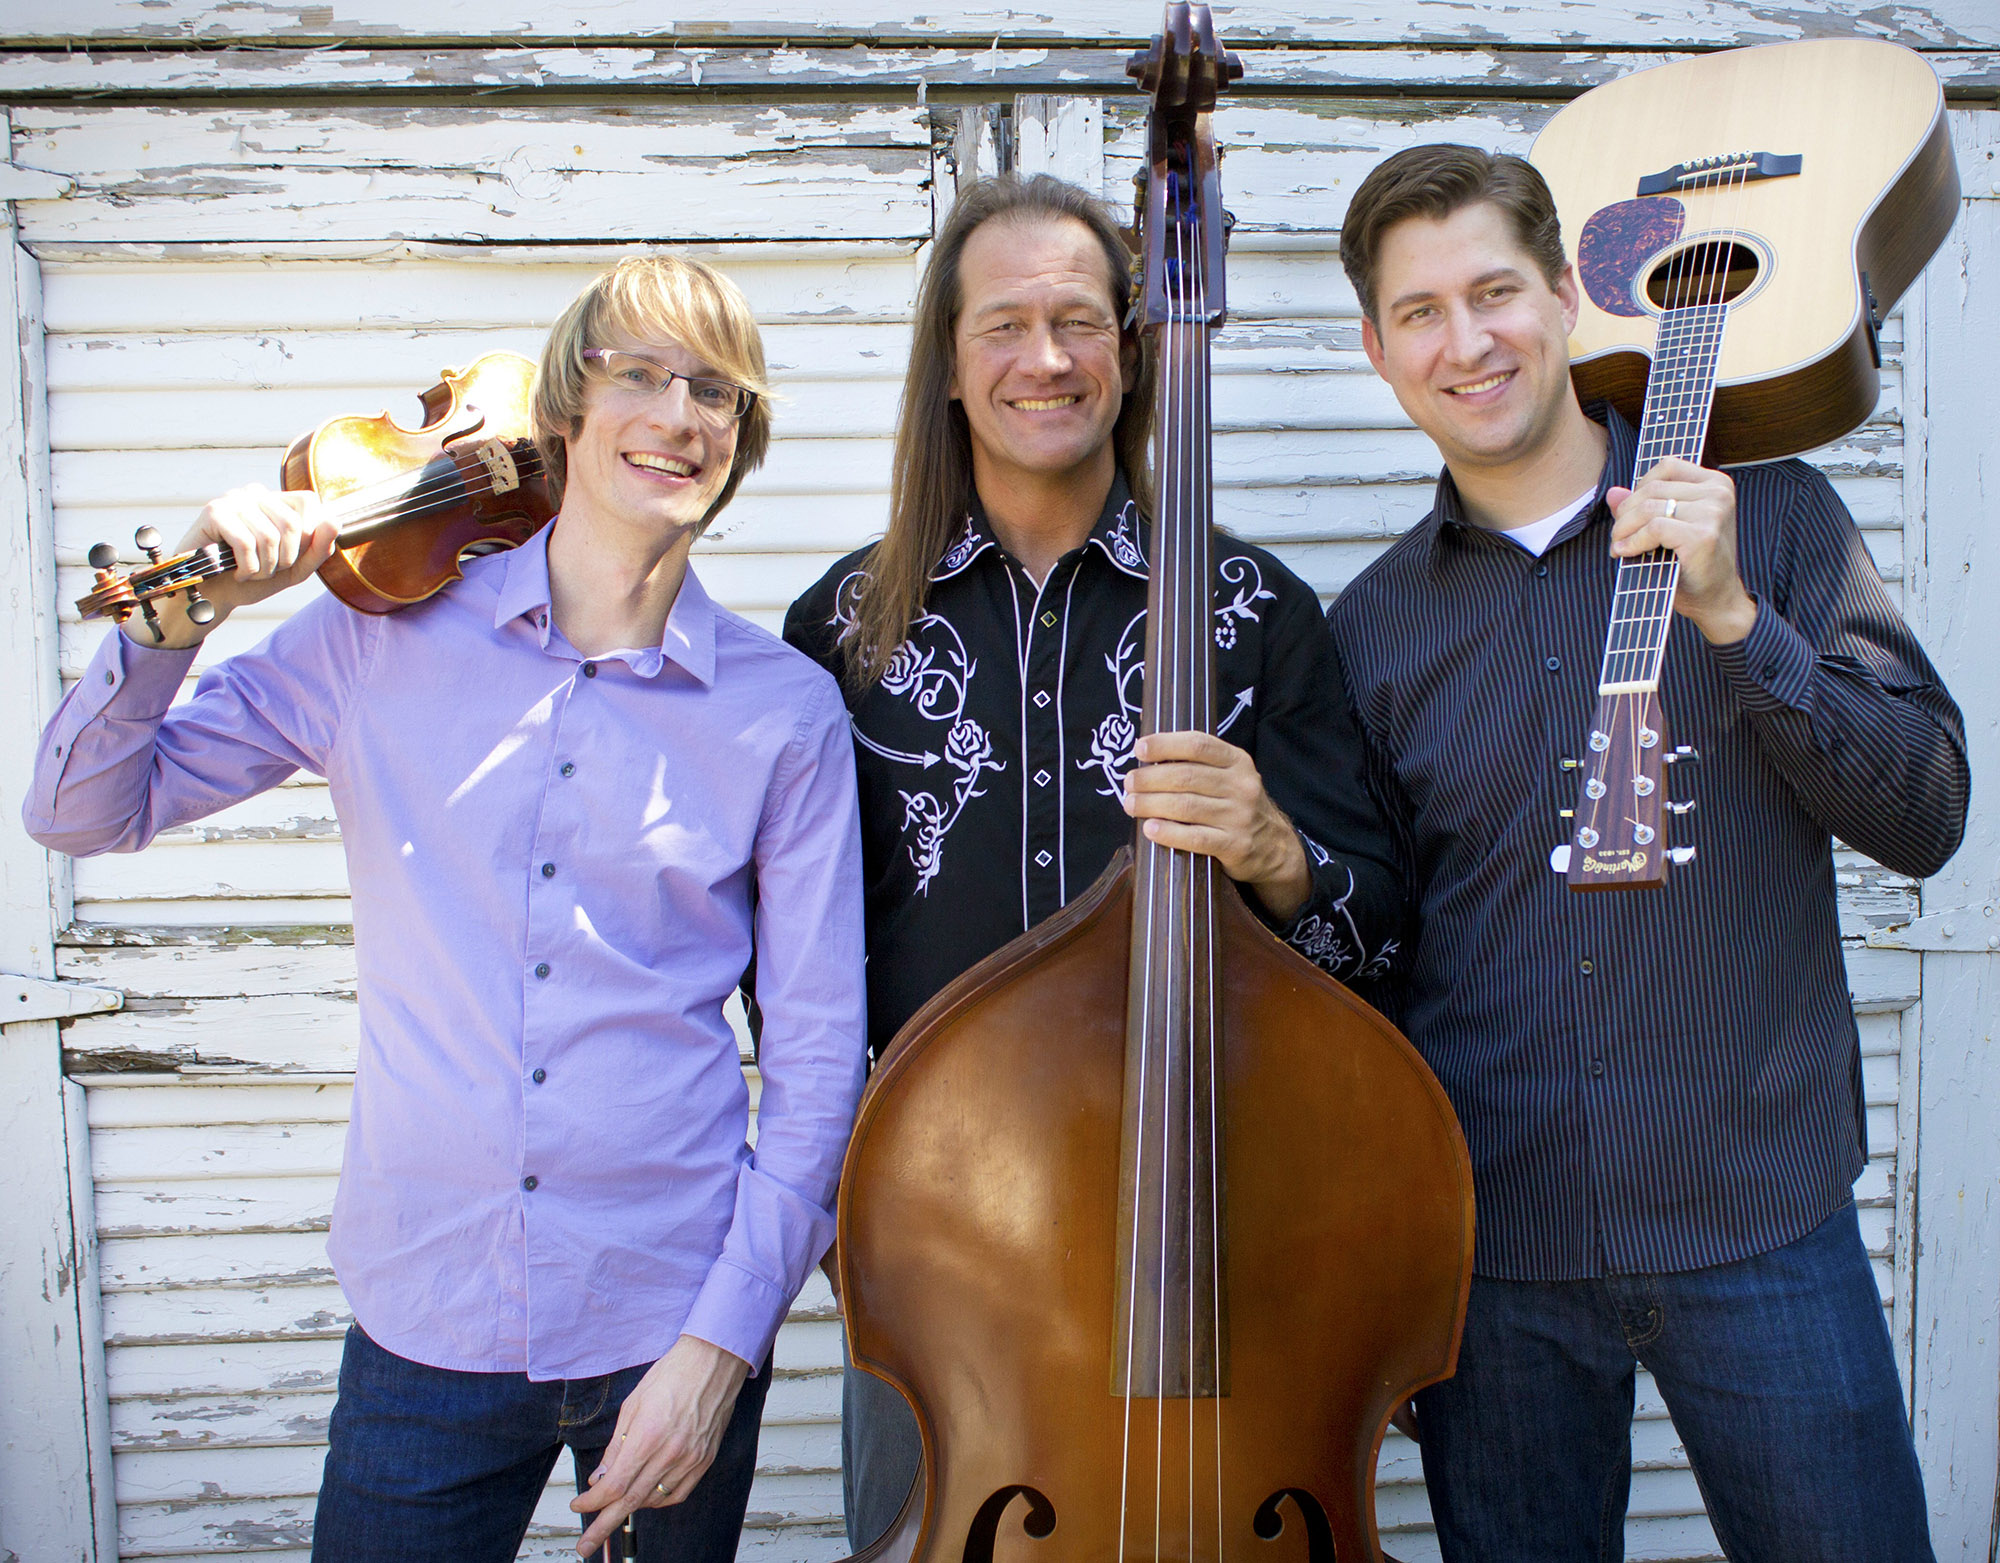 Horseshoe Road, a trio of (left to right) Kyle Dillingham, Brent Saulsbury and Peter Markes, was selected from over 300 groups nationwide to go on a world tour with the American Voices' American Music Abroad 2013 program, beginning in Washington, D.C. on March 11. Before they go, the band will offer a preview of their tour to a home crowd with a special concert at the University of Central Oklahoma International House at 3 p.m., Feb. 28.